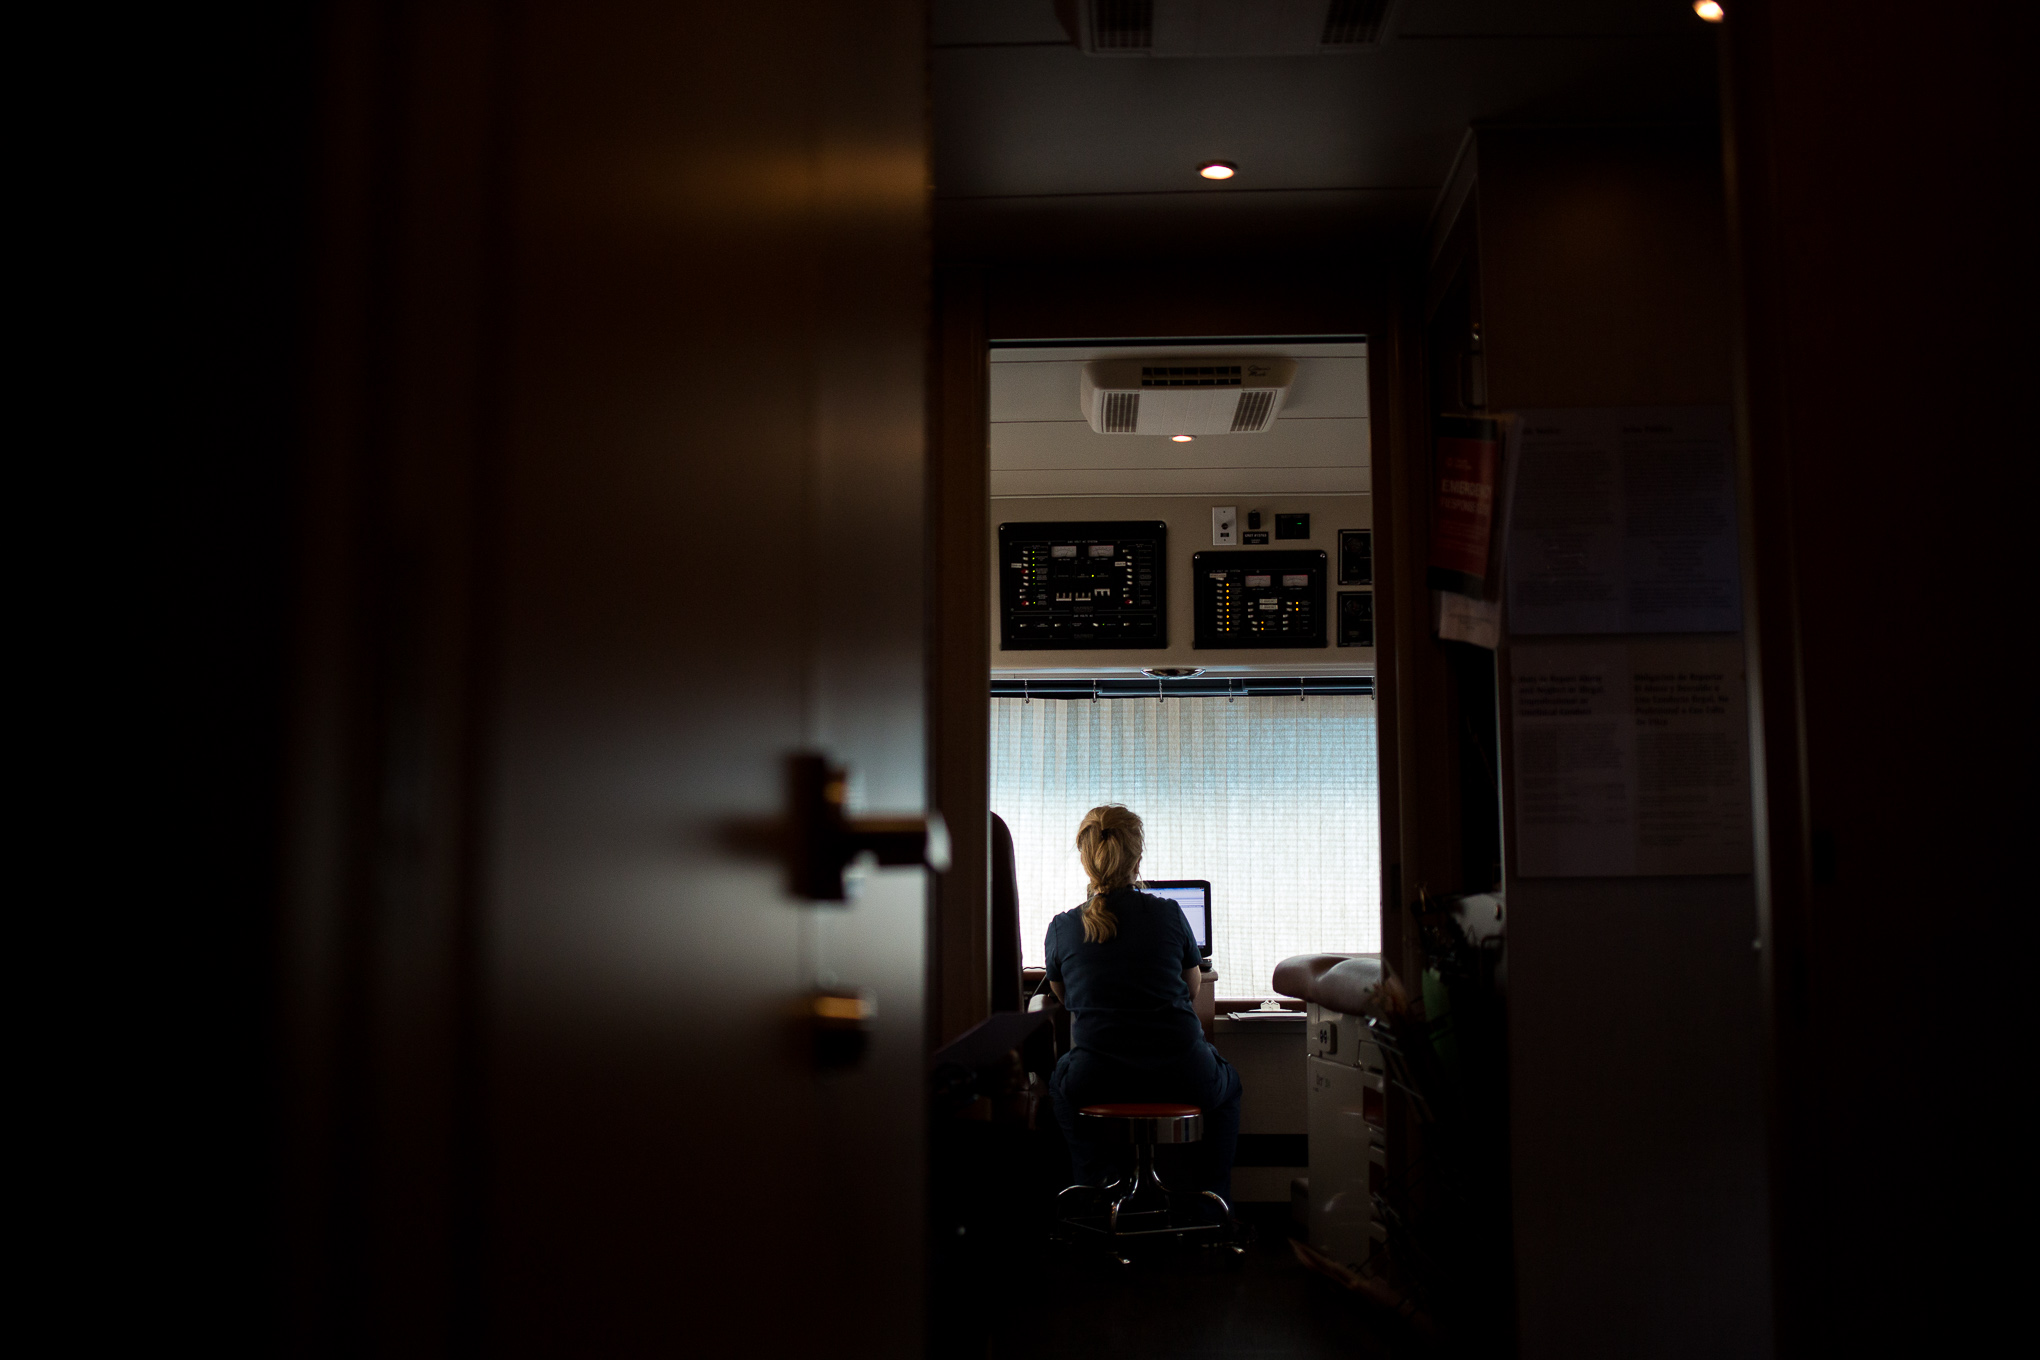 A University Health System Healthy U Express nurse prepares to meet with a patient.